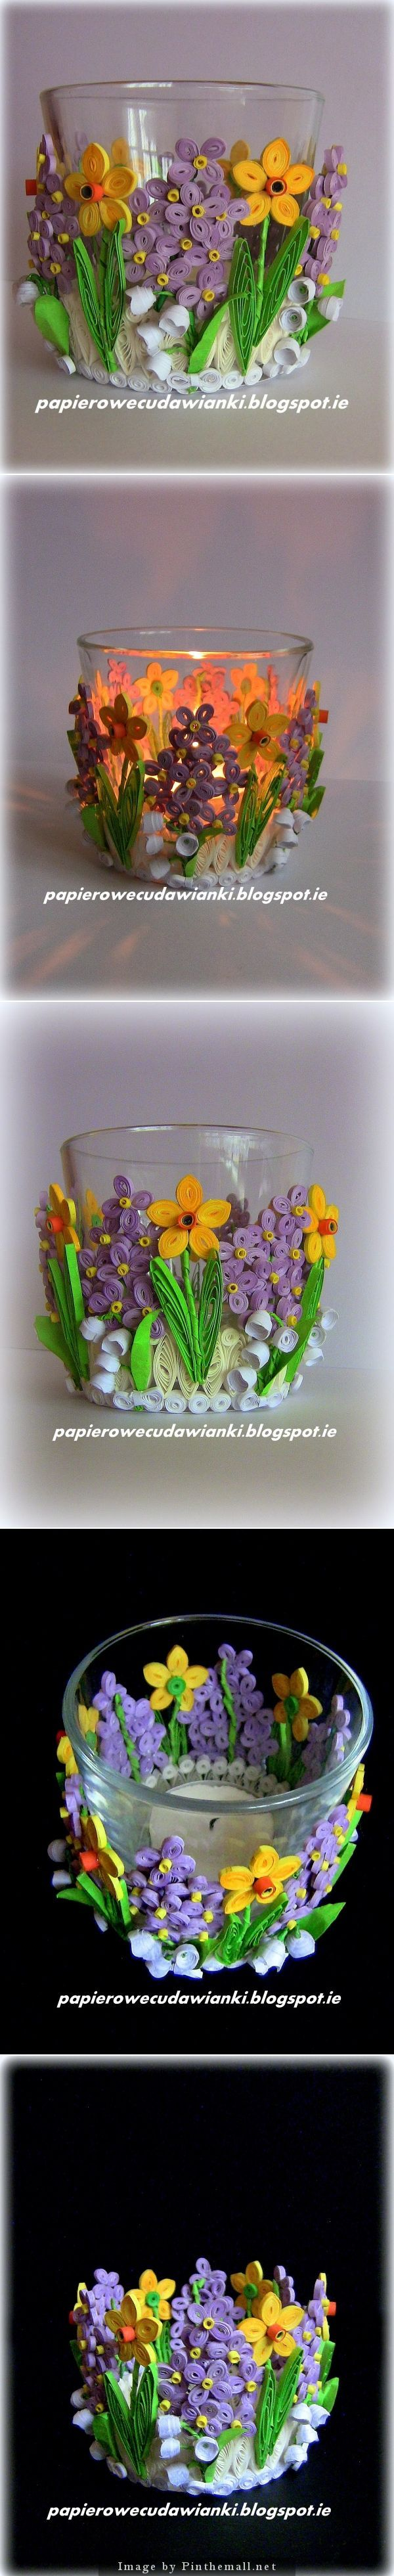 TEA CANDLE GLASS QUILLED http://papierowecudawianki.blogspot.ie/2014/03/quilling-swiecznikalbo-osonka-na.html - created via http://pinthemall.net #Crafts